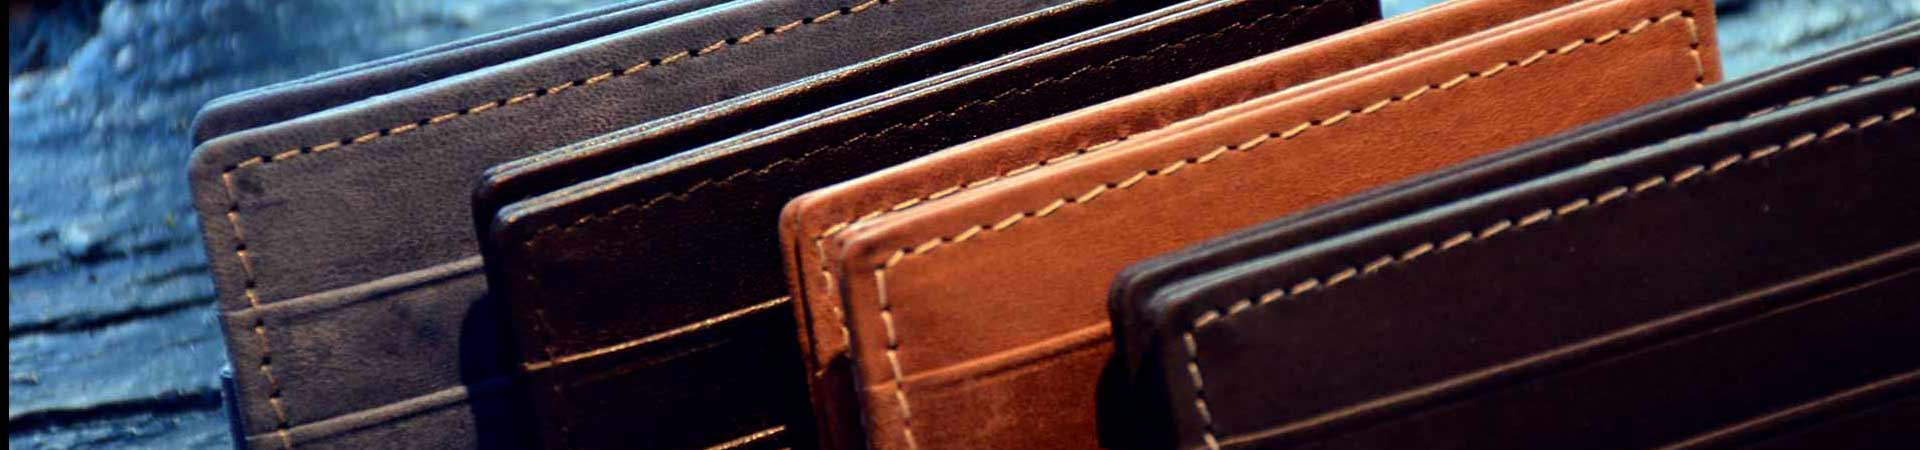 Garzini leather wallets and phone cases